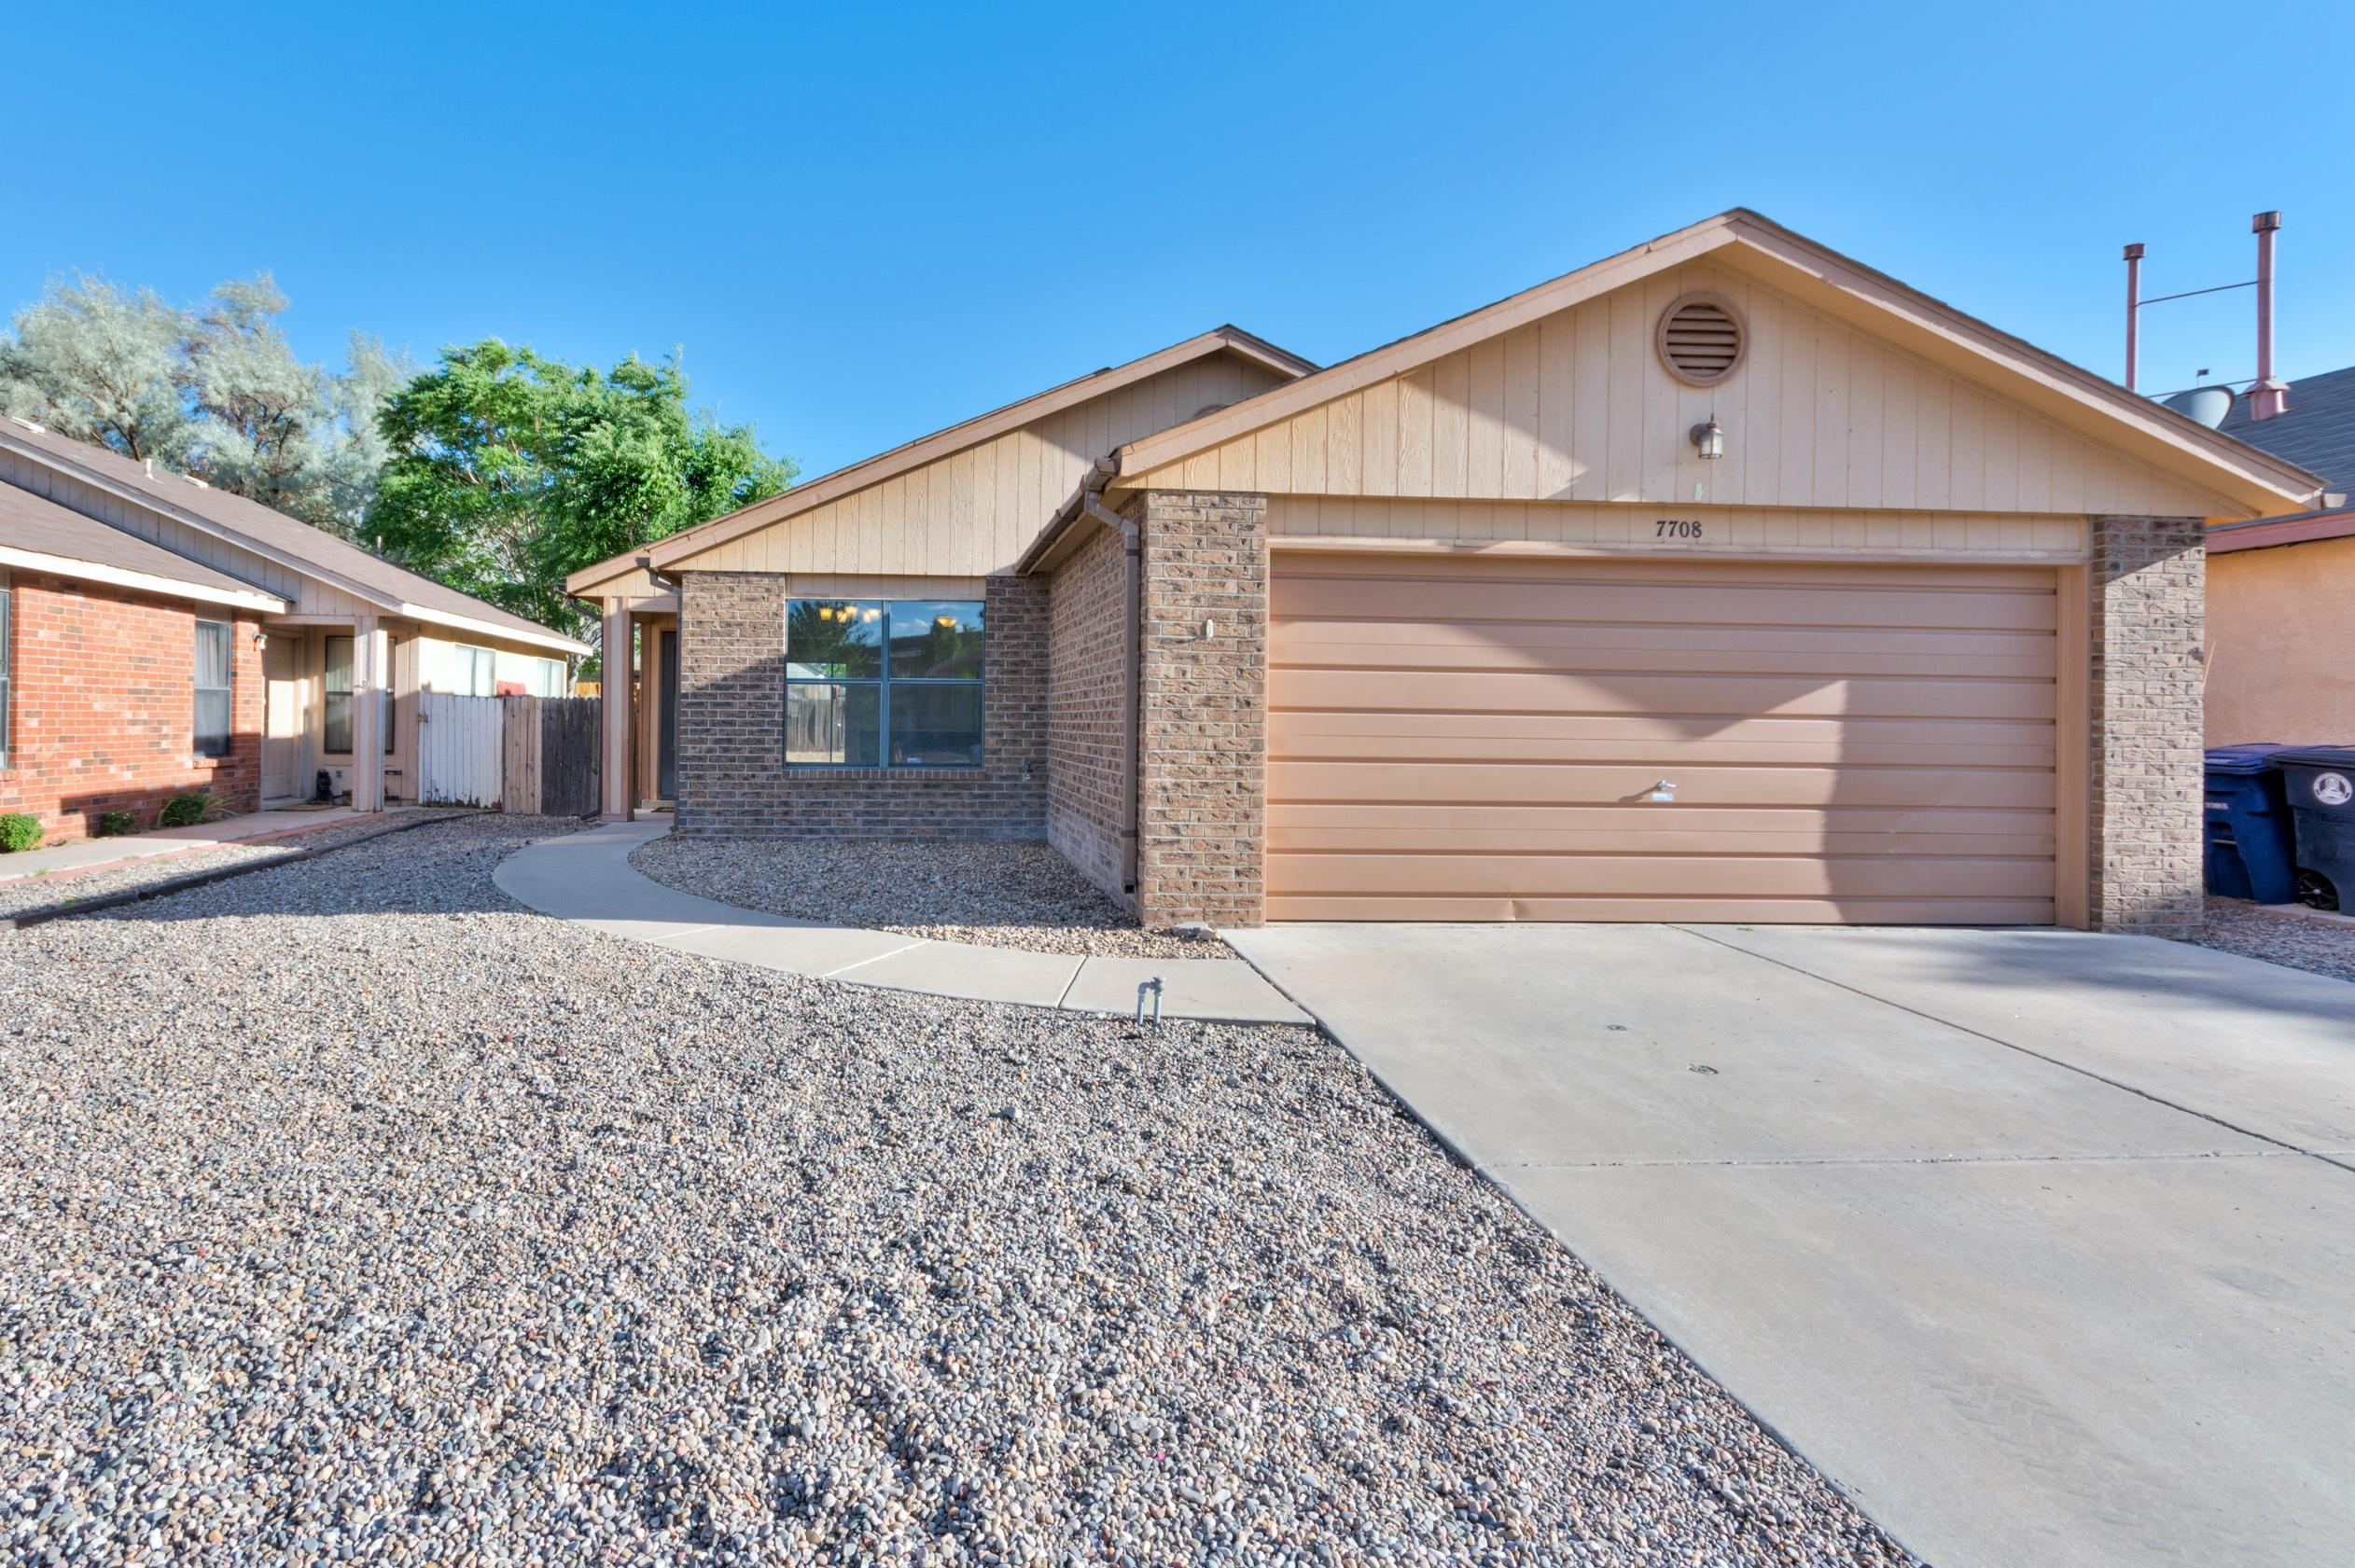 Look no further for your new home in the heart of Ladera Heights, minutes from the Petroglyphs! Complete with new flooring, fresh paint, and stainless steel appliances, this home will not disappoint, but will not last!